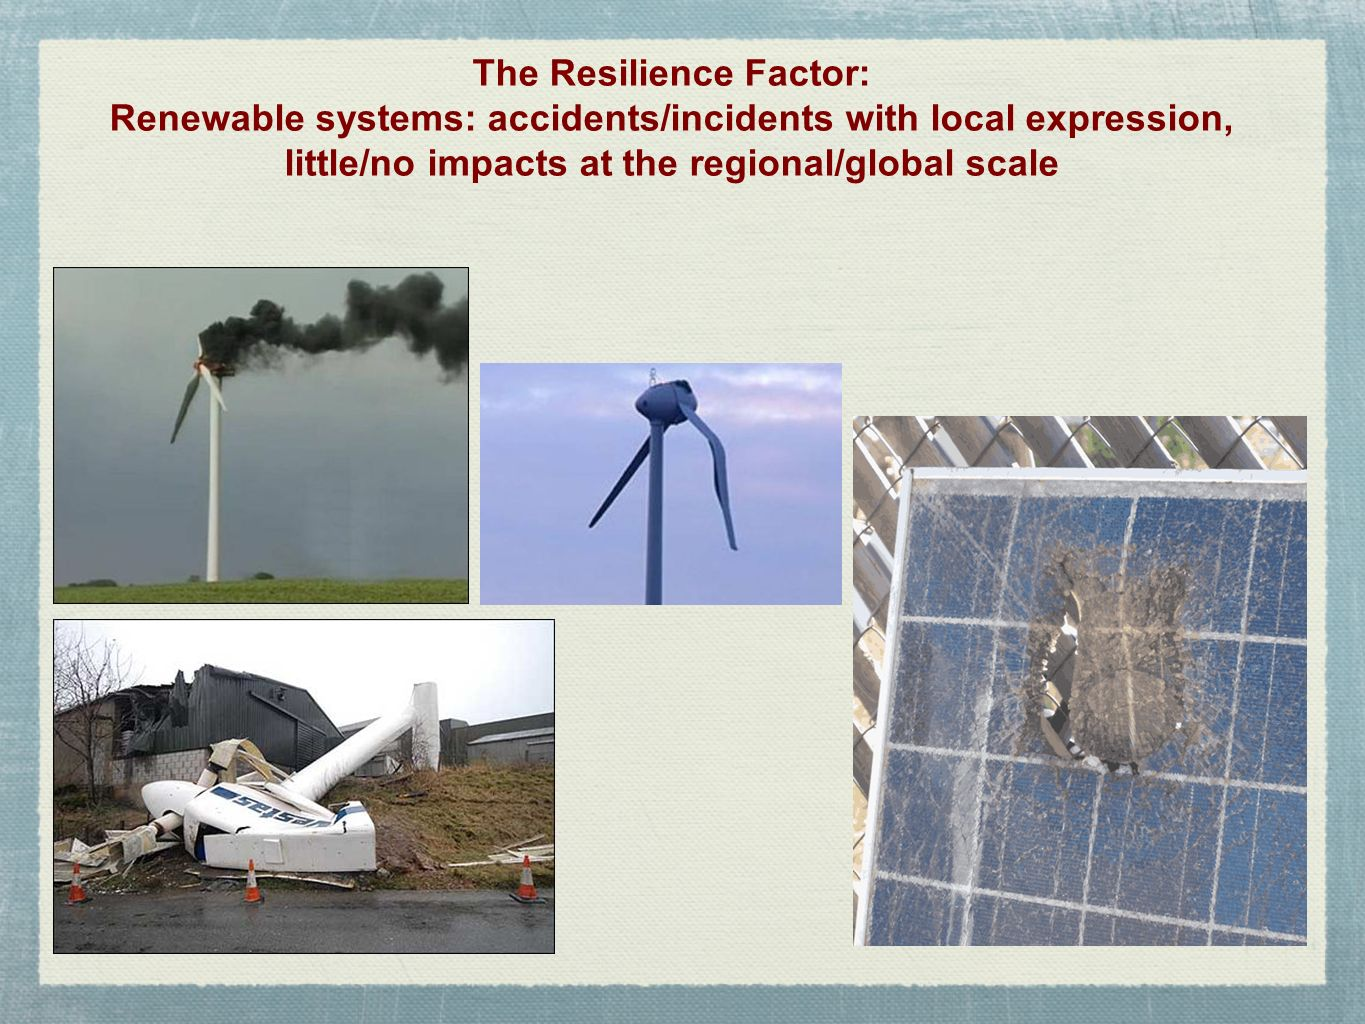 The Resilience Factor: Renewable systems: accidents/incidents with local expression, little/no impacts at the regional/global scale